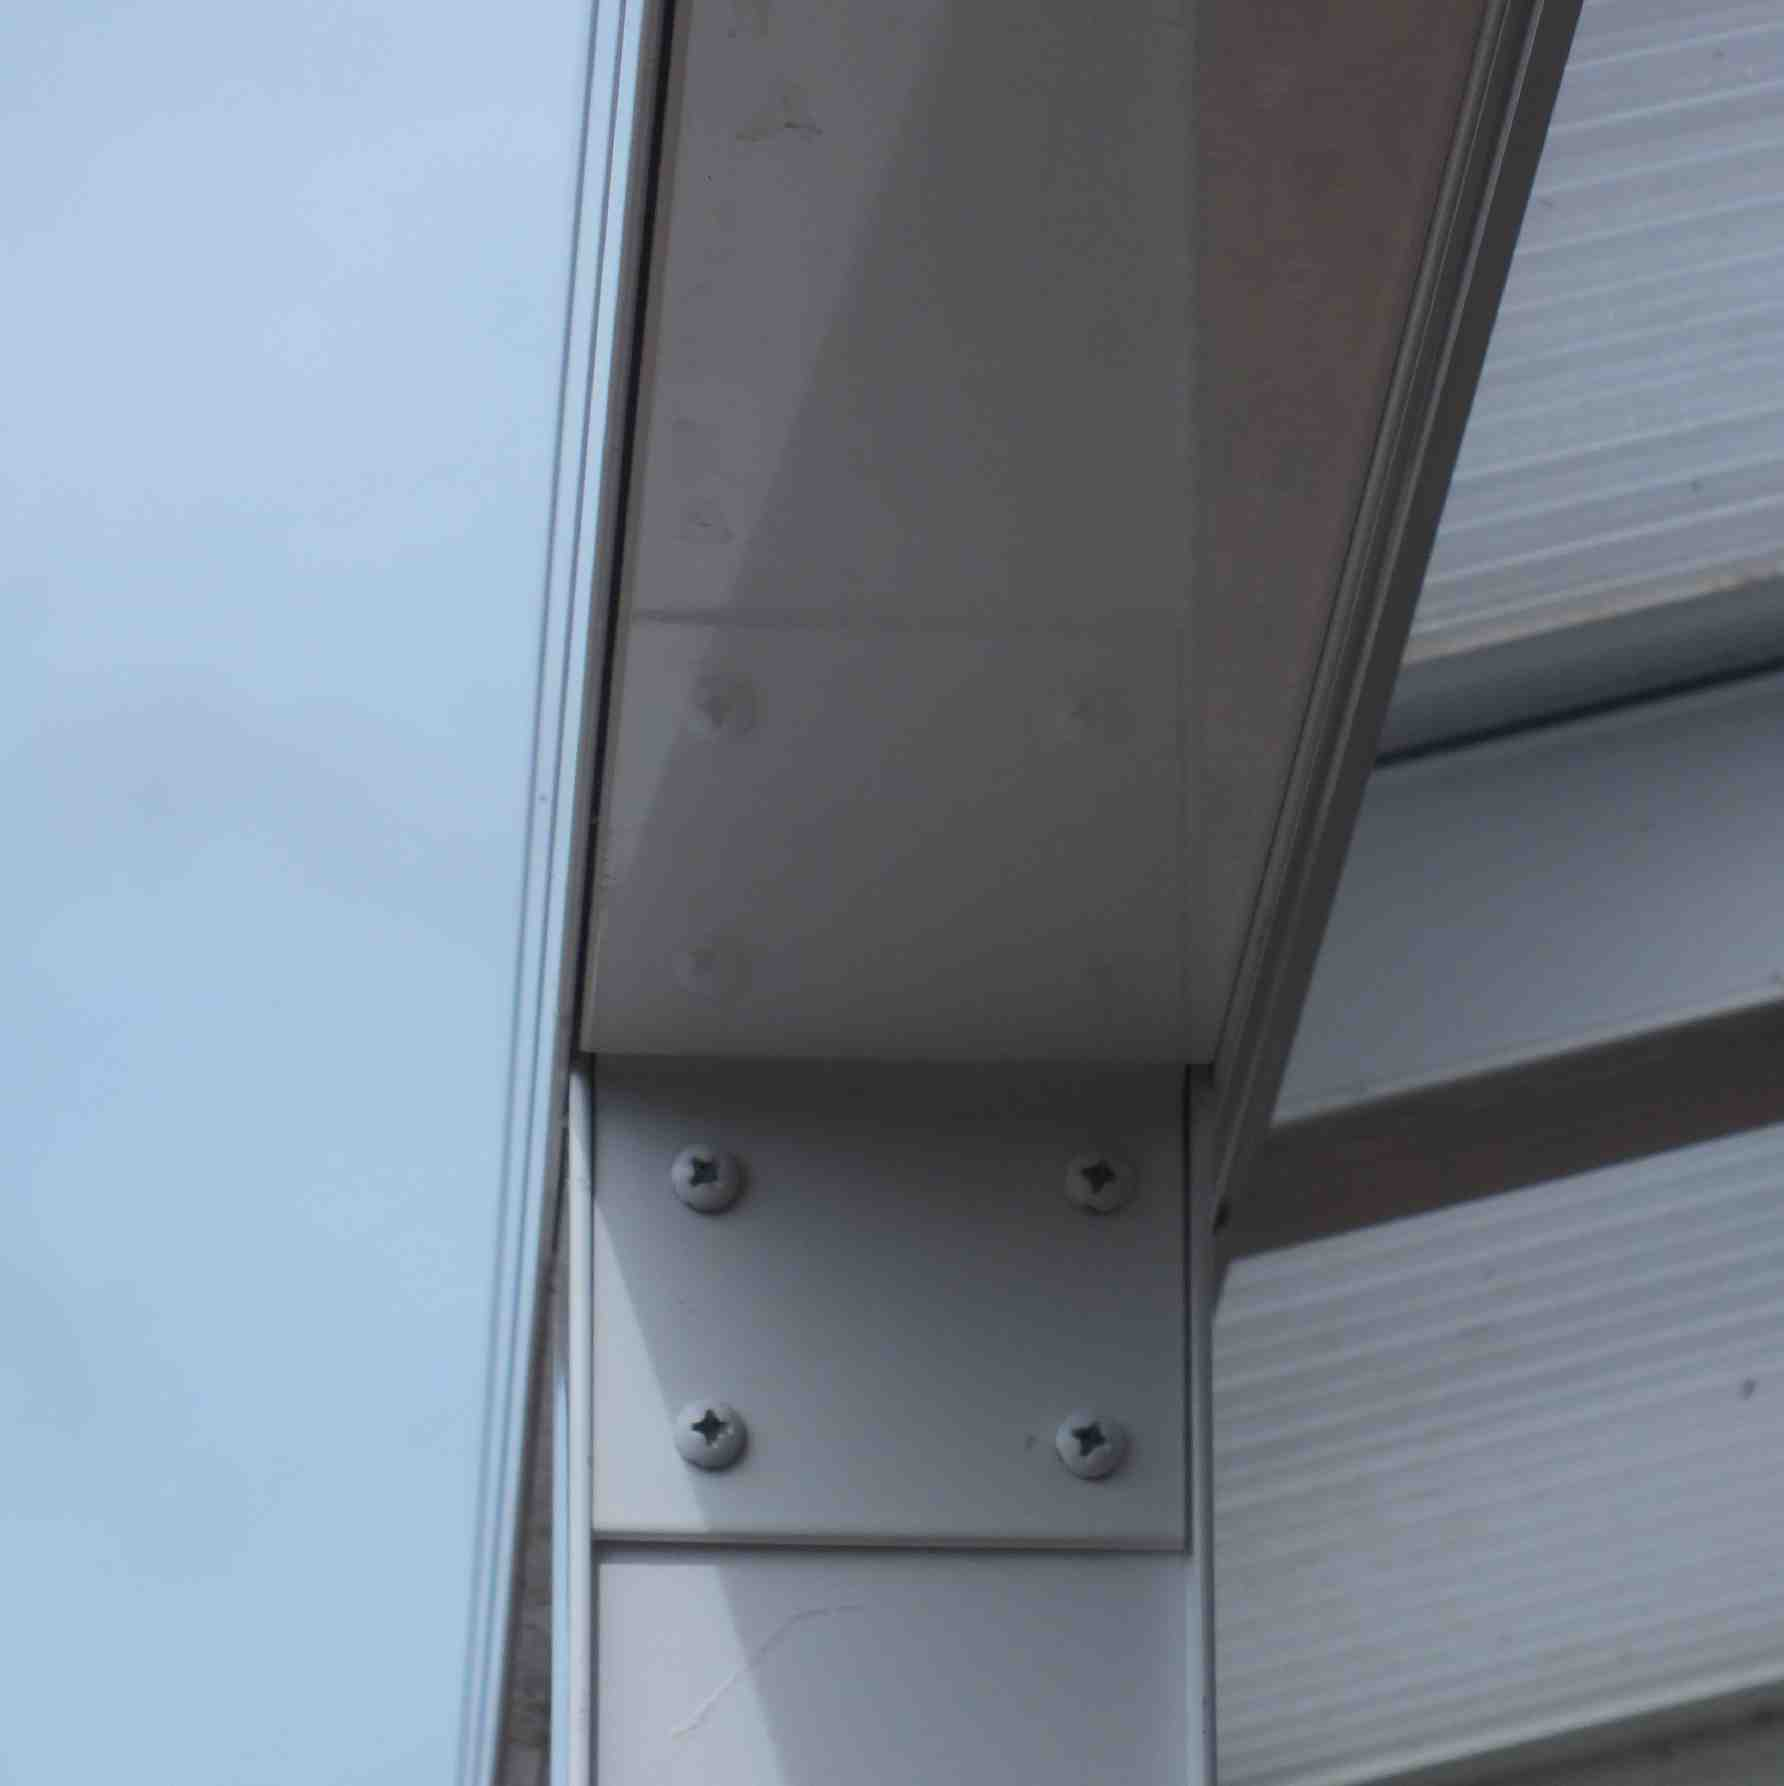 Affordable Omega Verandah with 16mm Polycarbonate Glazing - 12.0m (W) x 2.0m (P), (5) Supporting Posts